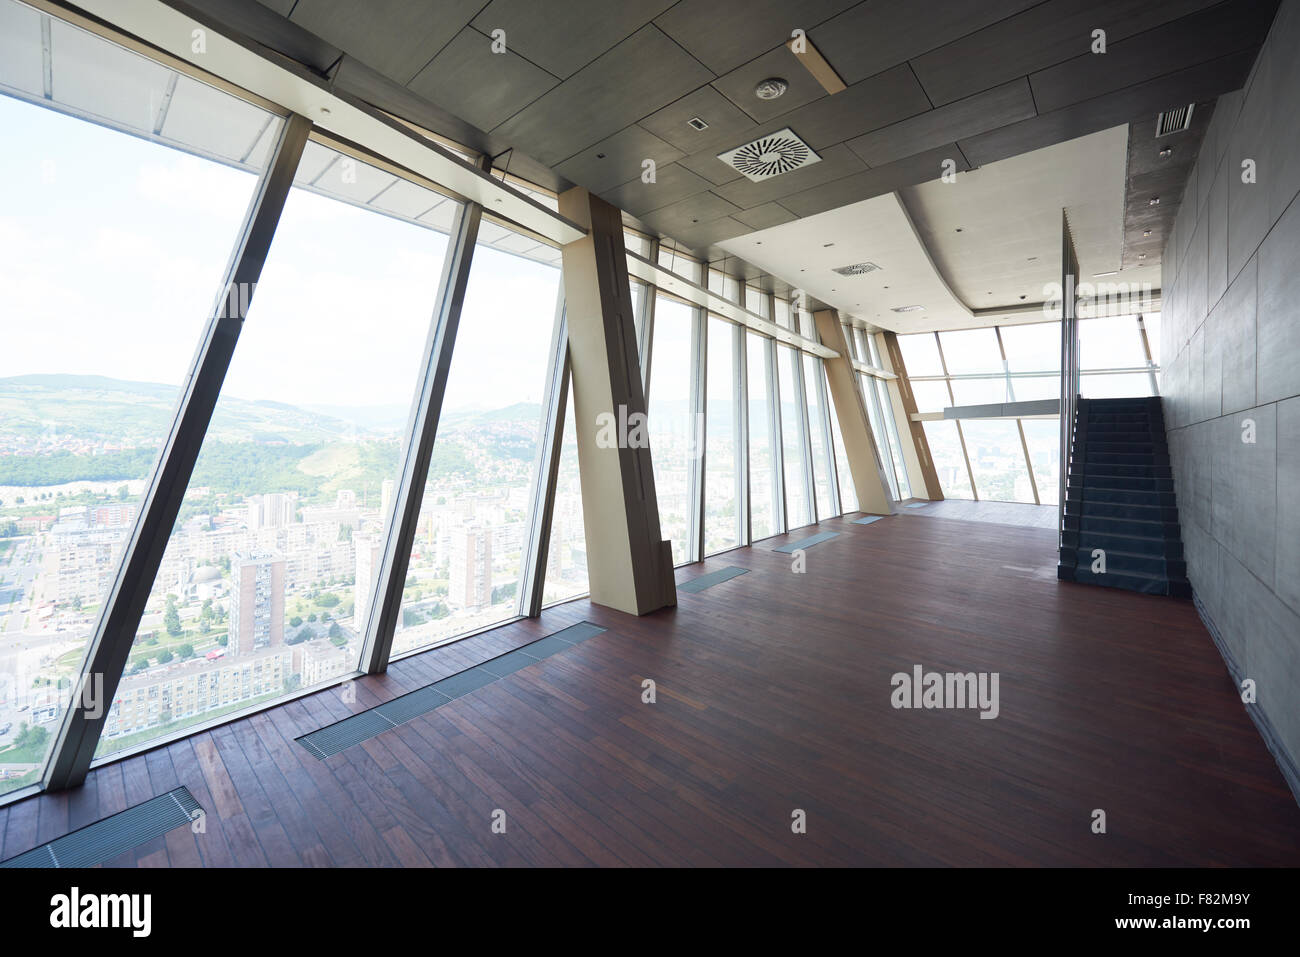 Big empty living room - Stock Photo Modern Bright Empty Office Or Living Room Interior With Big Windows And Stairs